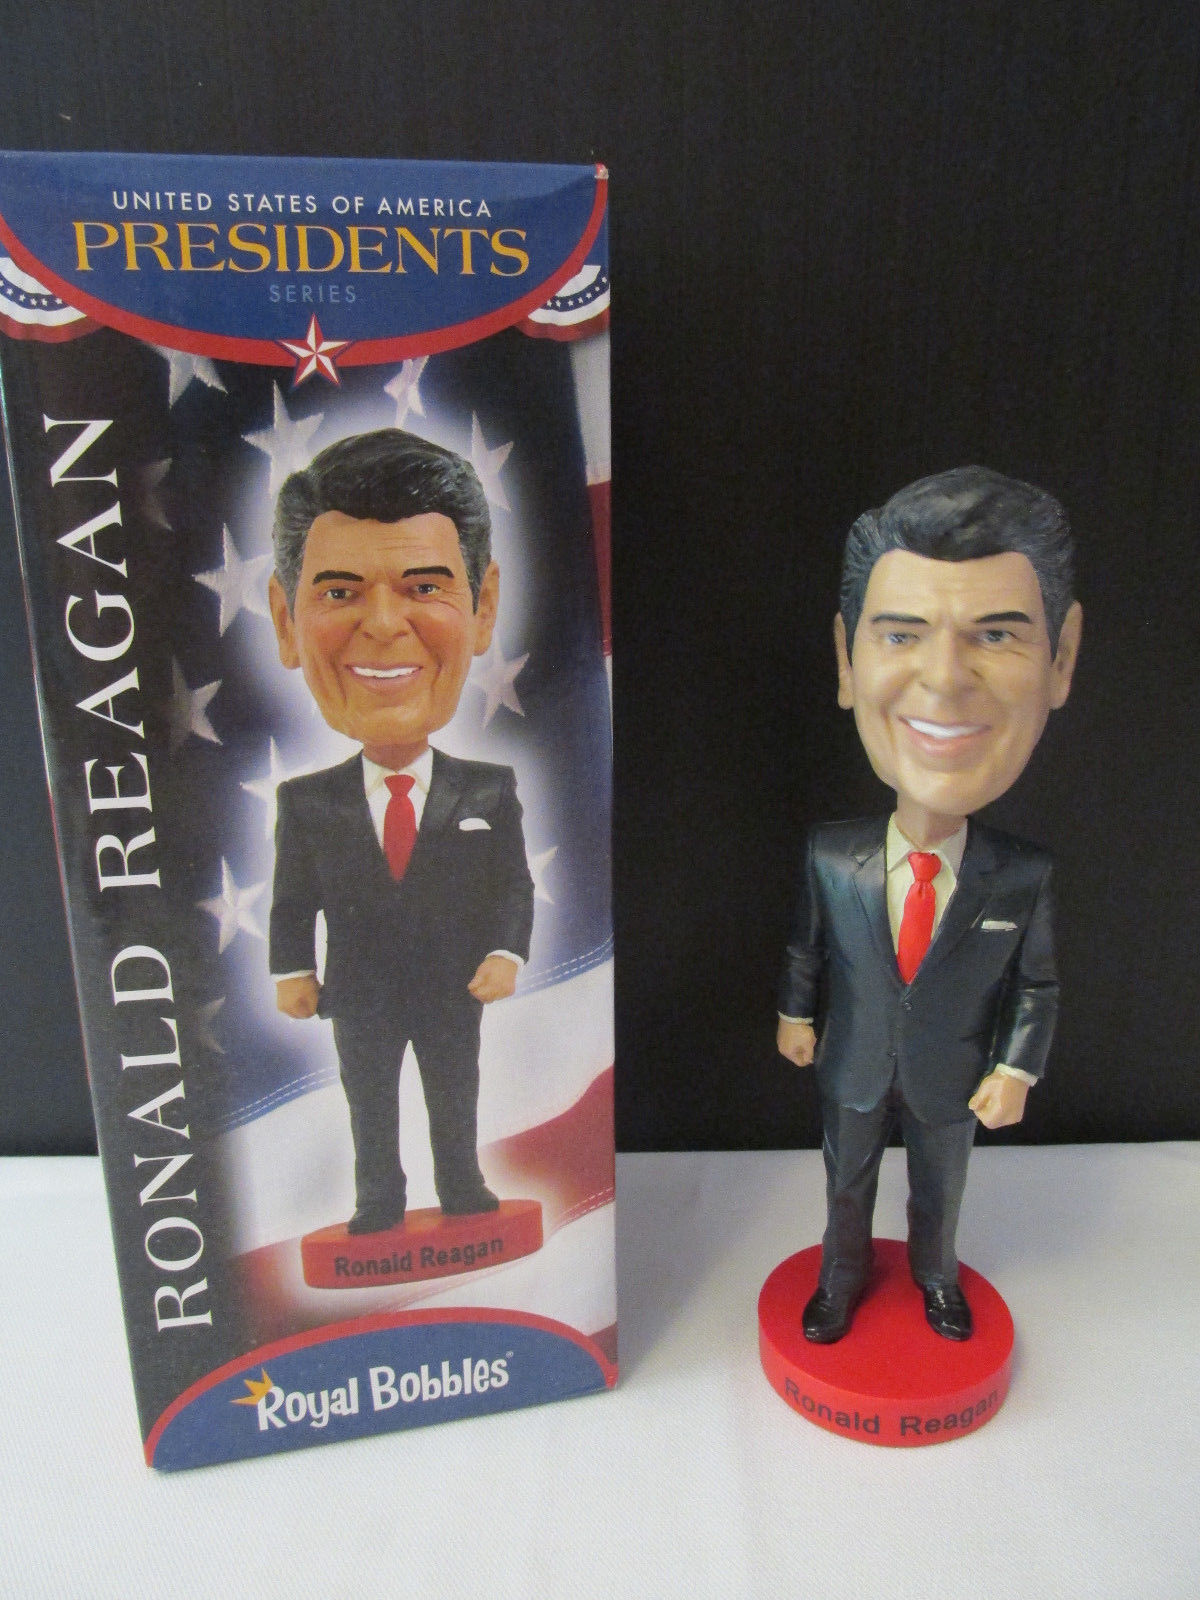 Ronald Reagan Bobblehead (Royal Bobbles)